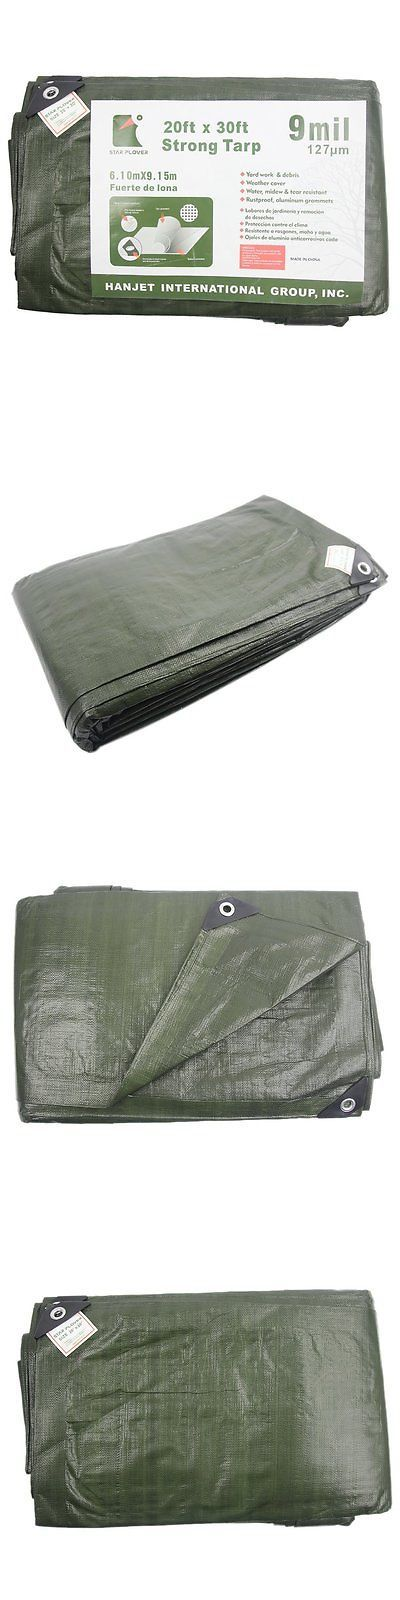 Tent and Canopy Accessories 36120: Hanjet 12 X 20 9-Mil Thick Green Camping Tarp Shelter Waterproof For Boat Pool -> BUY IT NOW ONLY: $46.29 on eBay!